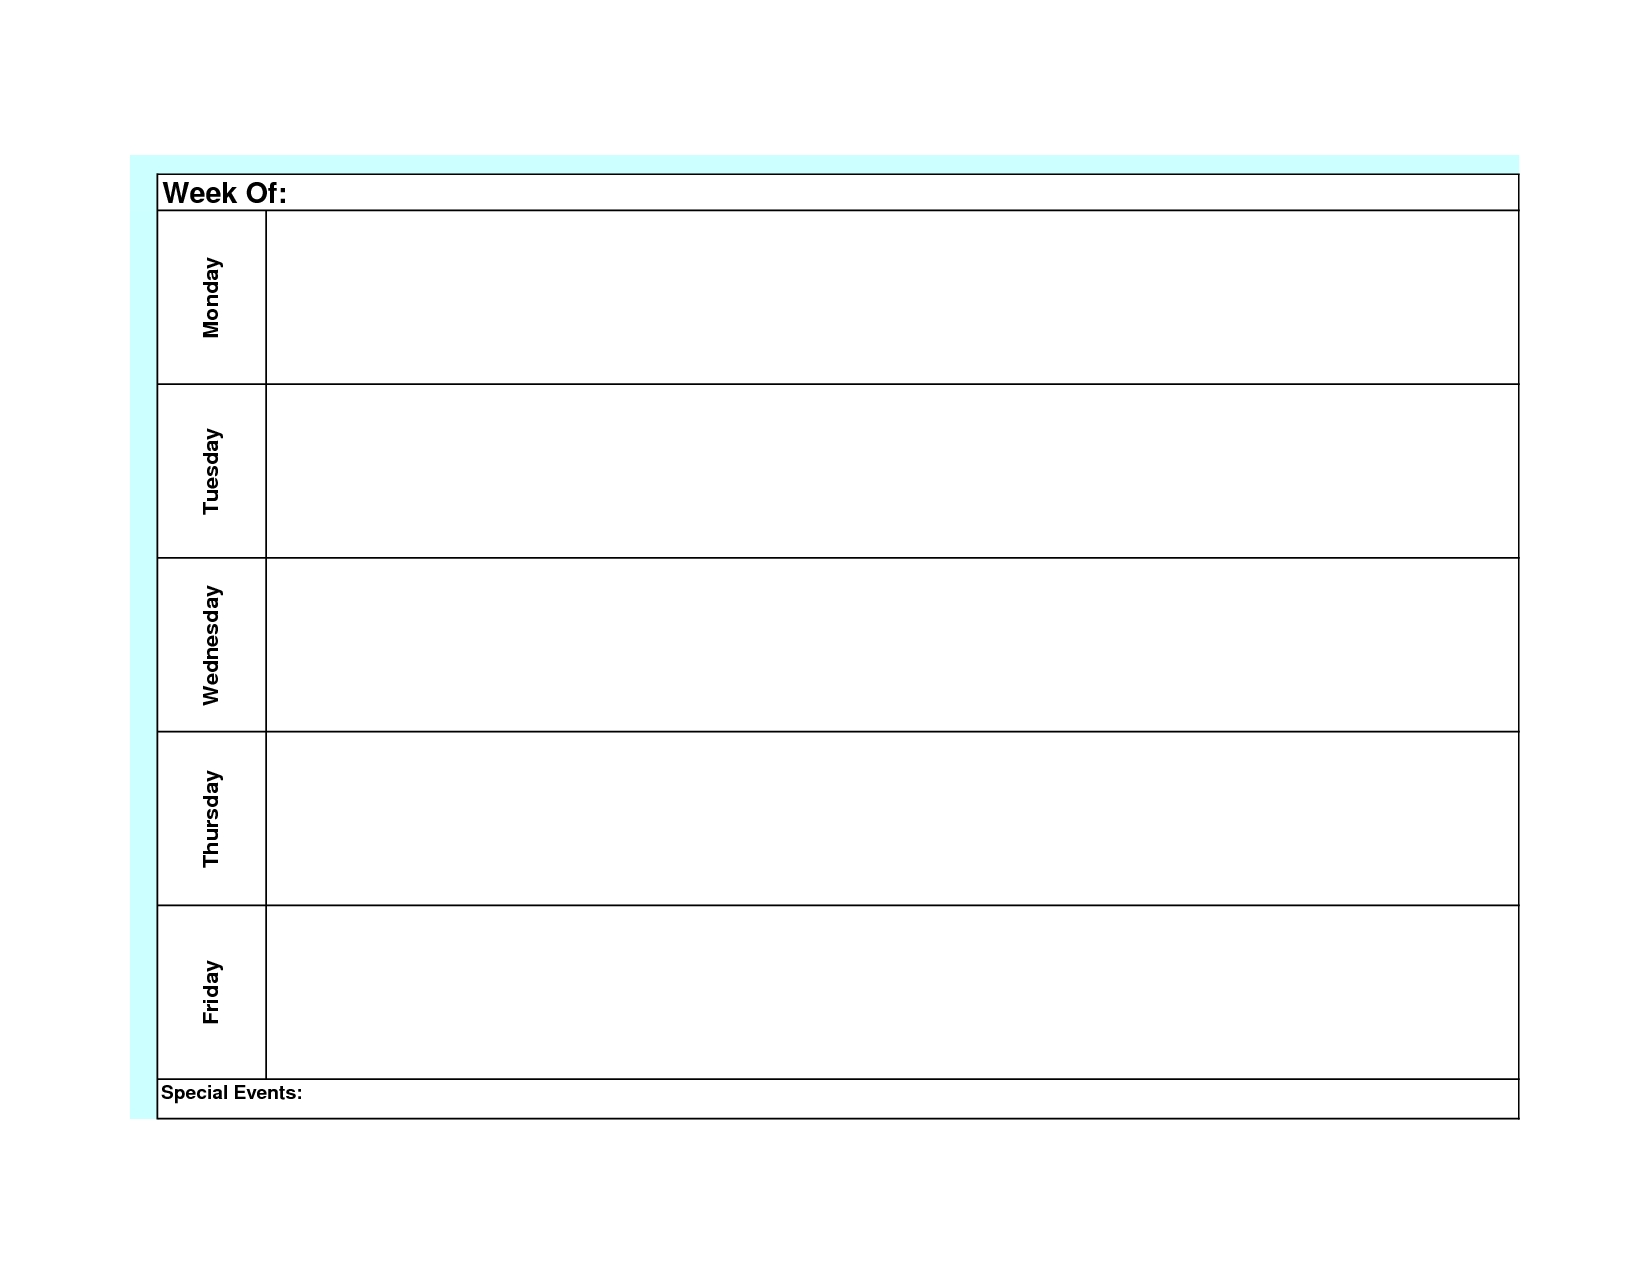 Blank Weekly Calendar Monday Through Friday Template Planner To | Smorad pertaining to Printable Weekly Calendar Monday Through Friday